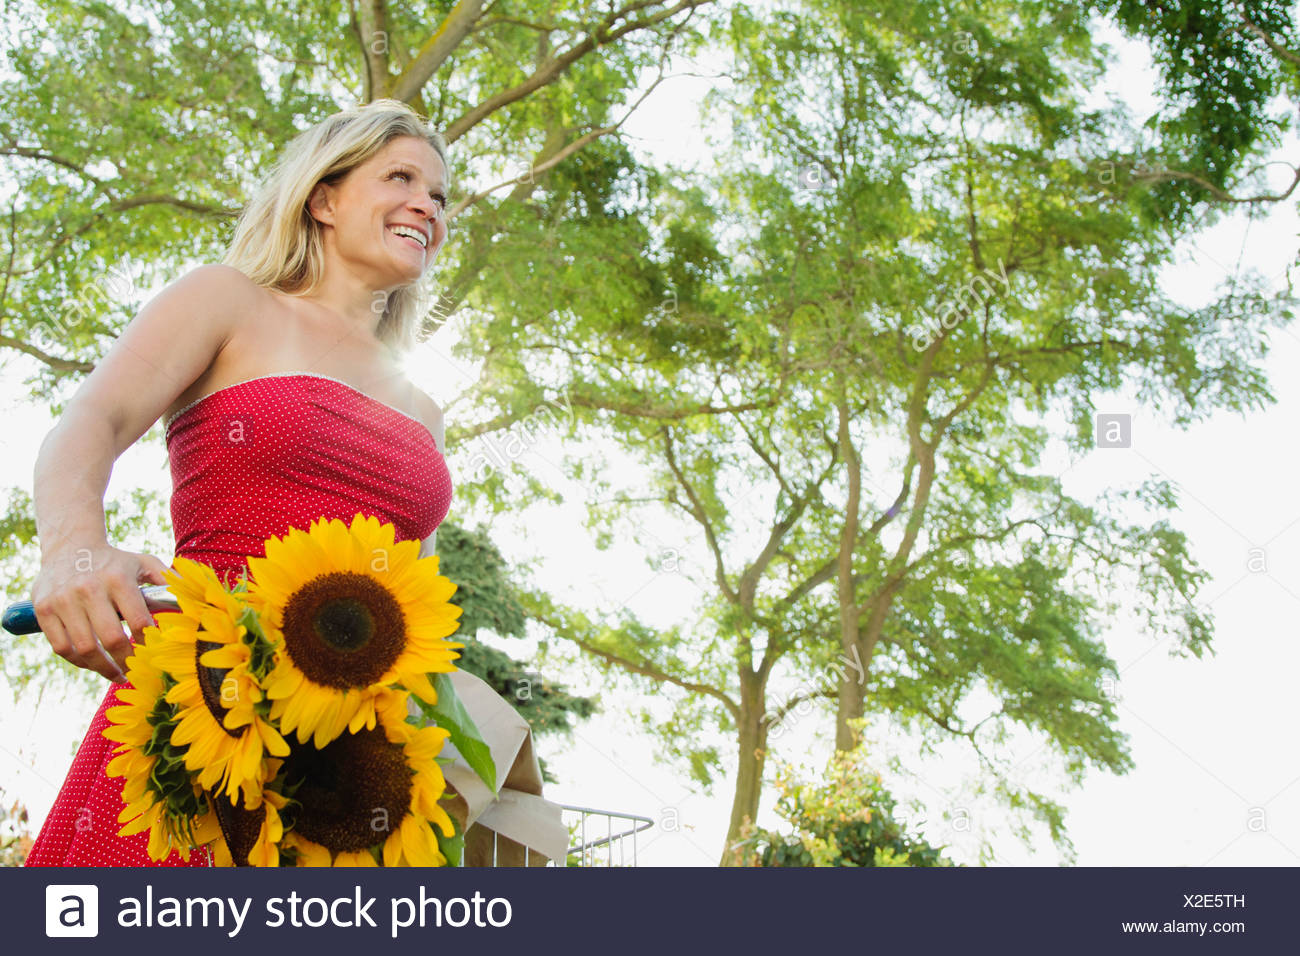 Woman standing with bicycle outdoors - Stock Image